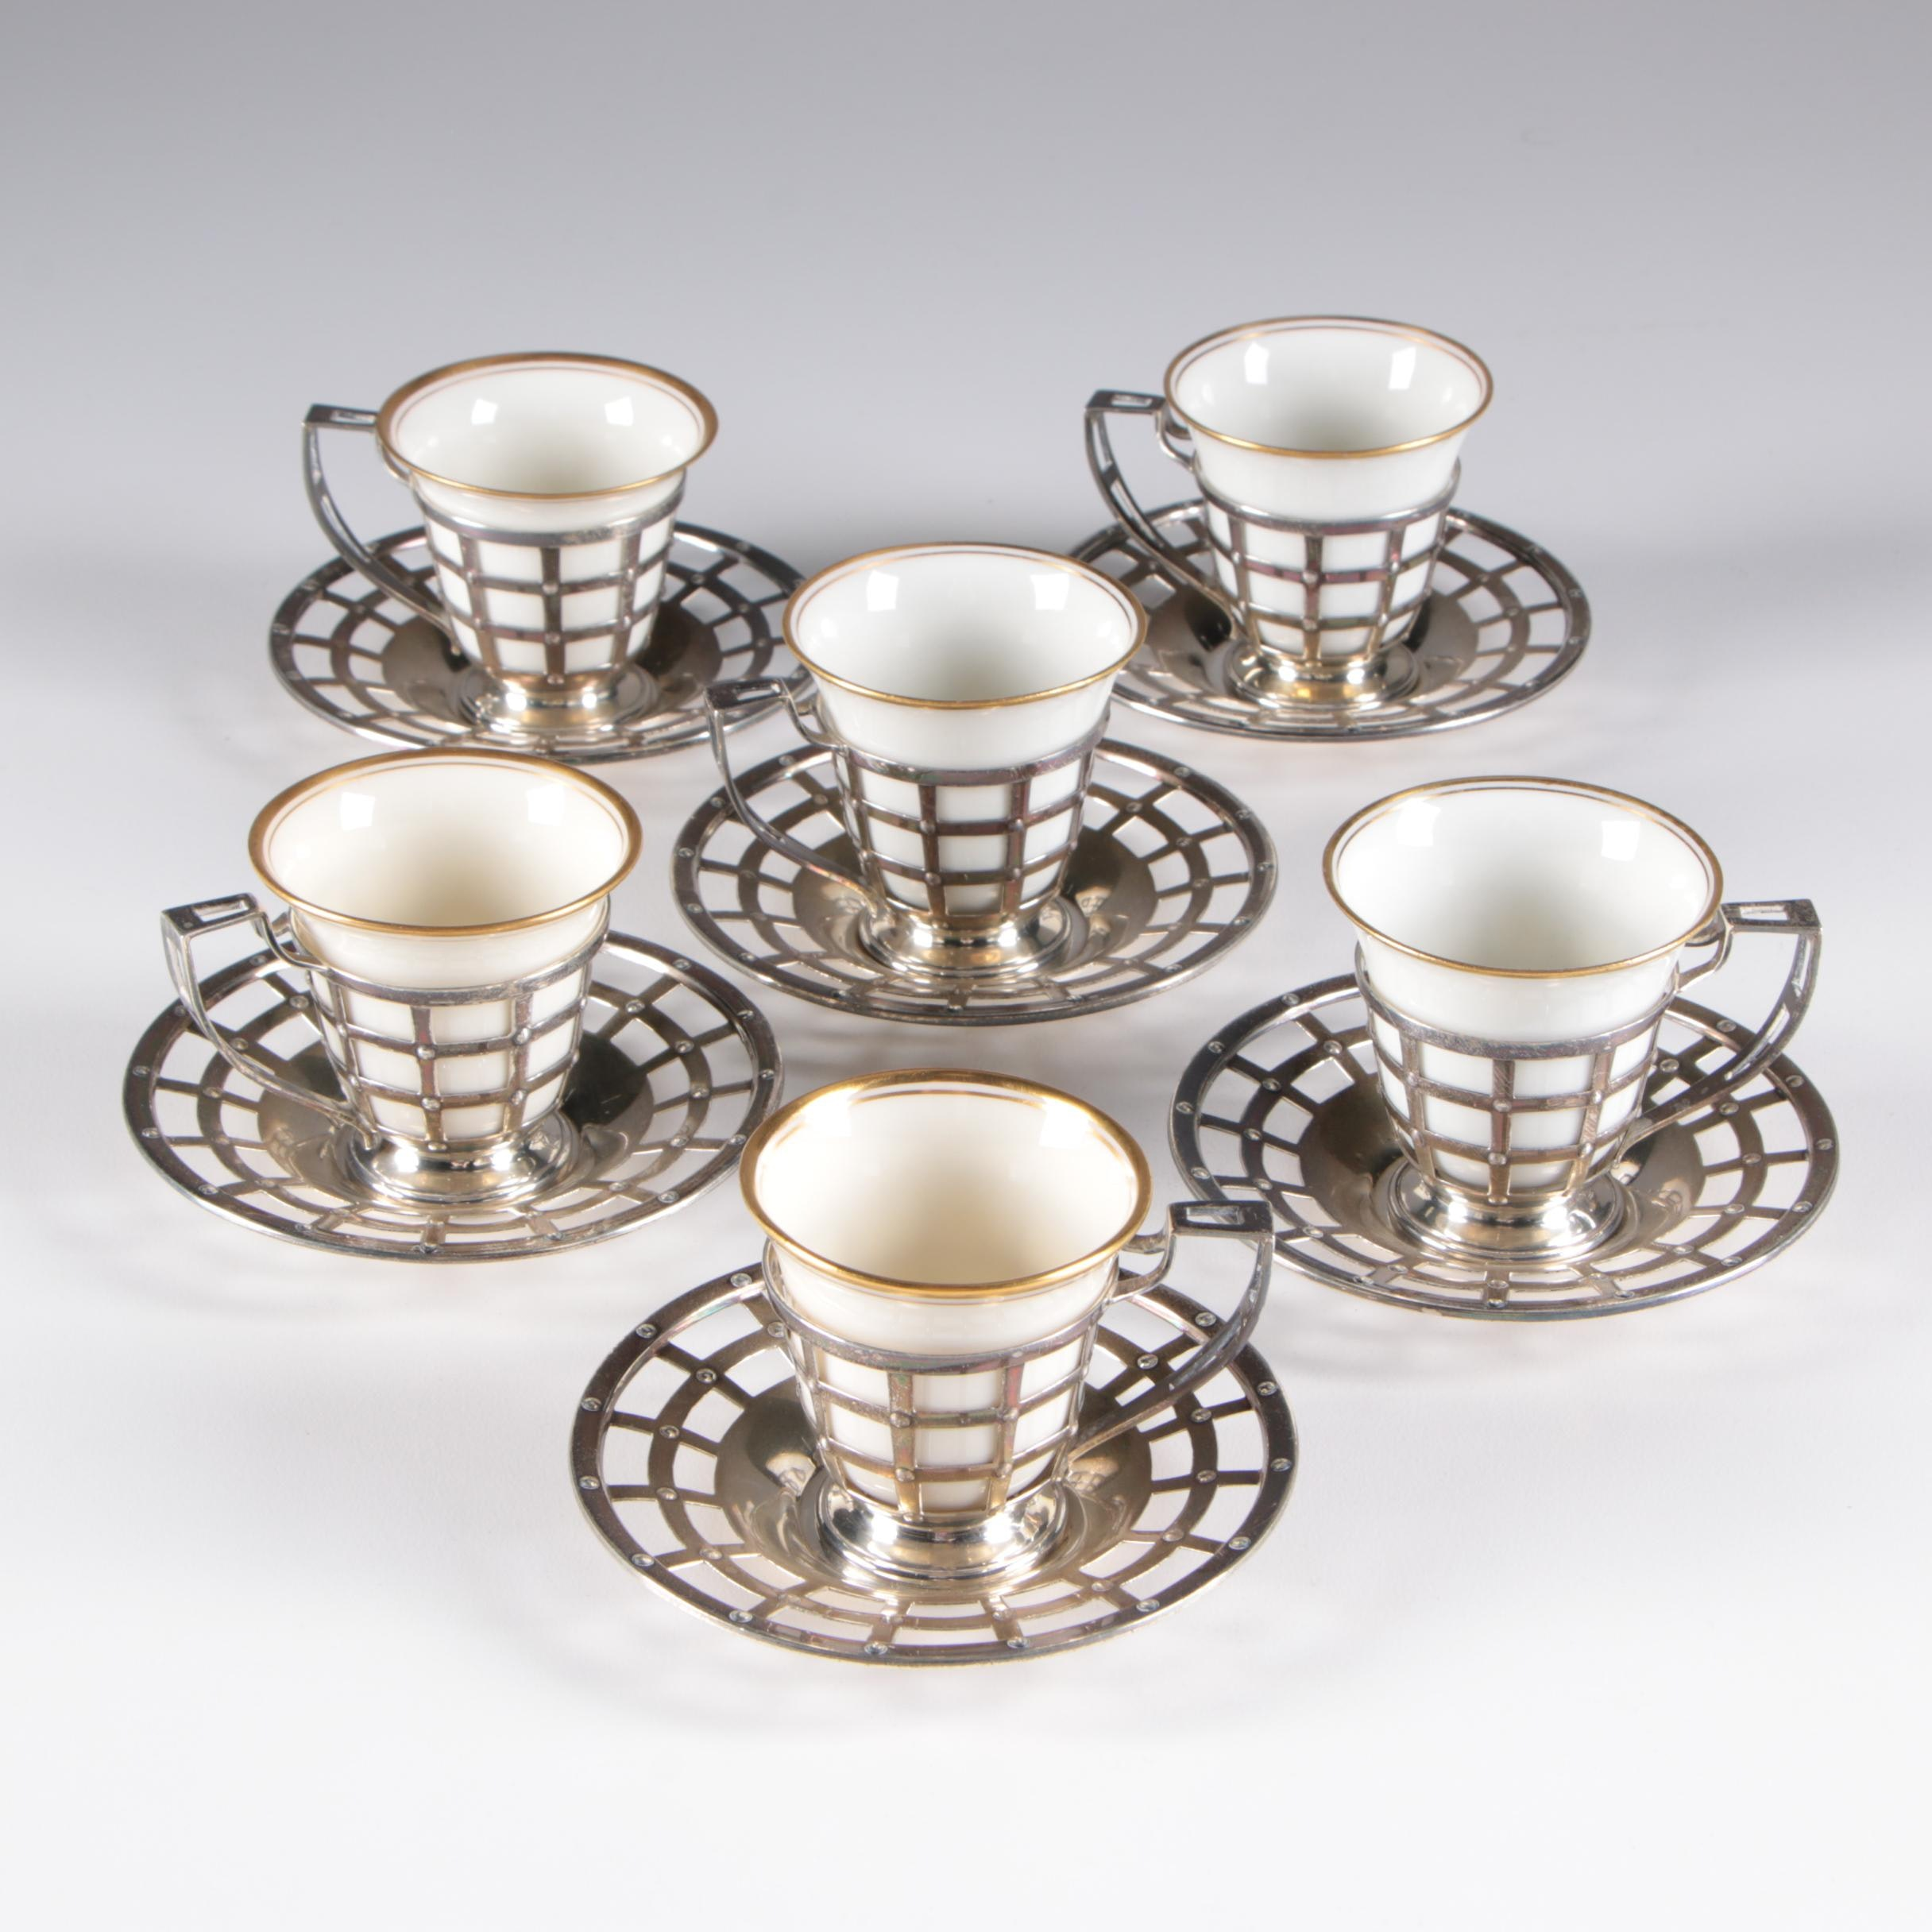 Watson Sterling Silver Demitasse Set with Lenox Inserts, Early 20th Century